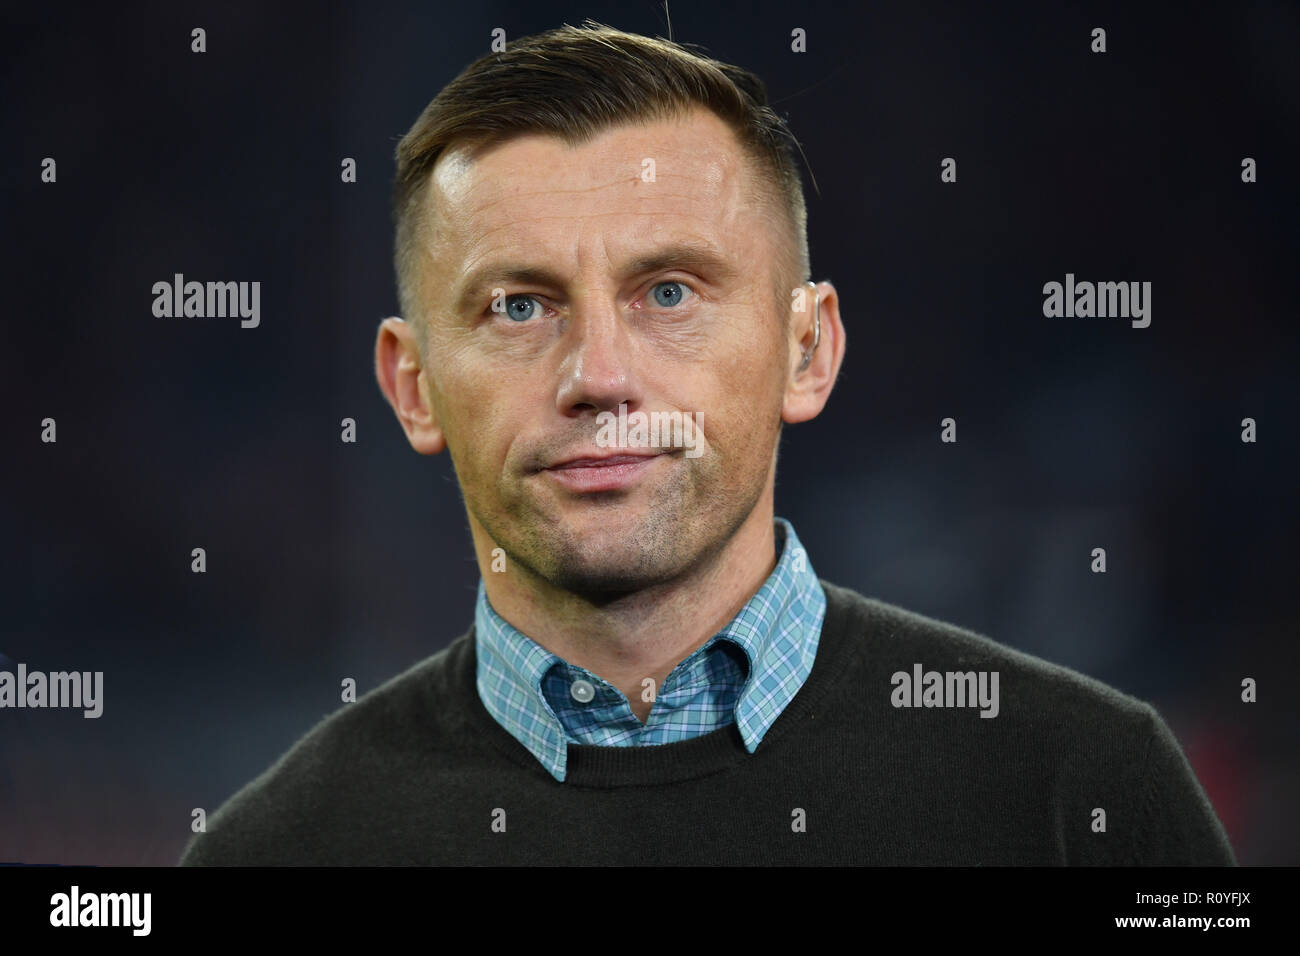 Munich, Deutschland. 07th Nov, 2018. Ivica OLIC (former professional football player), single picture, one-on-one cut, portrait, portrait, portrait. FC Bayern Munich (M) - AEK Athens FC (Athens) 2-0, Football Champions League, Group E, on 07/11/2018. ALLIANZAREN A. DFL REGULATION PROHIBIT ANY USE OF PHOTOGRAPH AS IMAGE SEQUENCES AND/OR QUASI VIDEO. | usage worldwide Credit: dpa/Alamy Live News - Stock Image